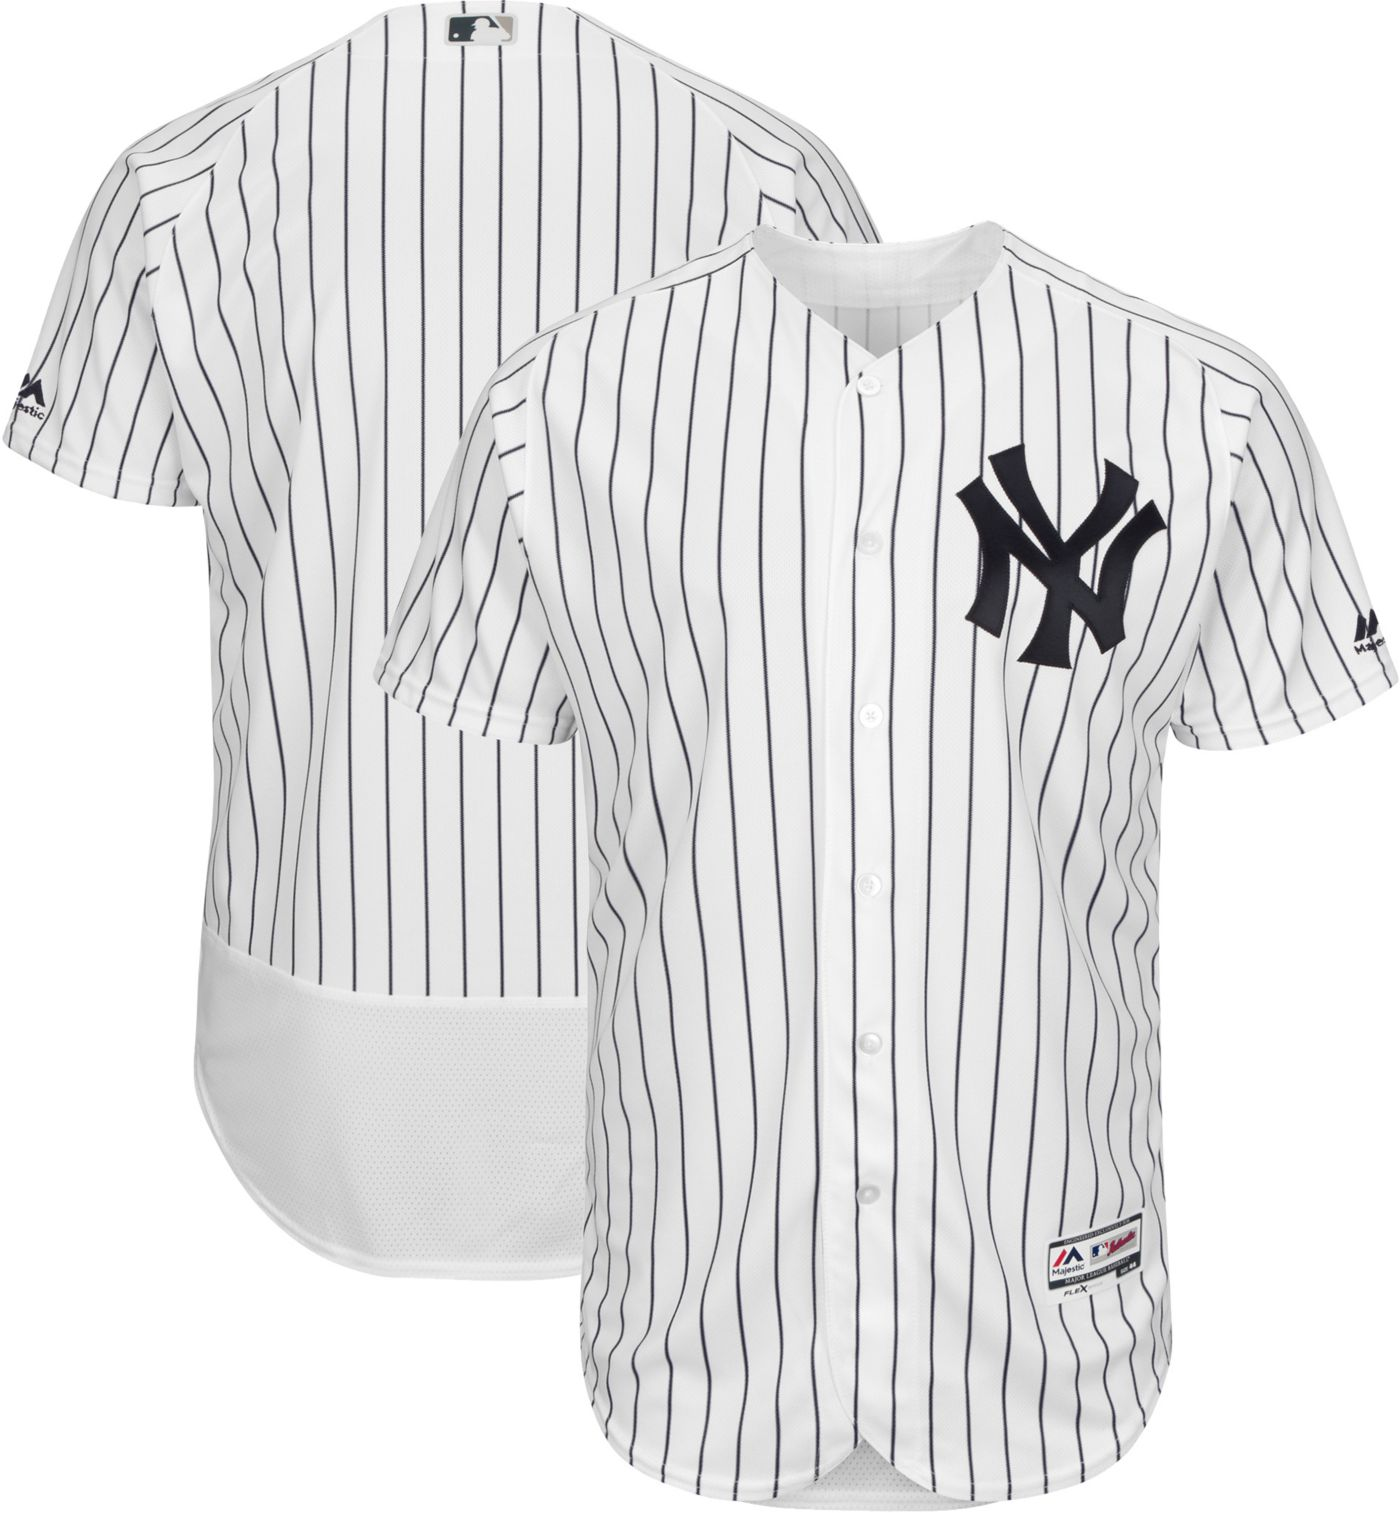 Majestic Men's Authentic New York Yankees Home White Flex Base On-Field Jersey